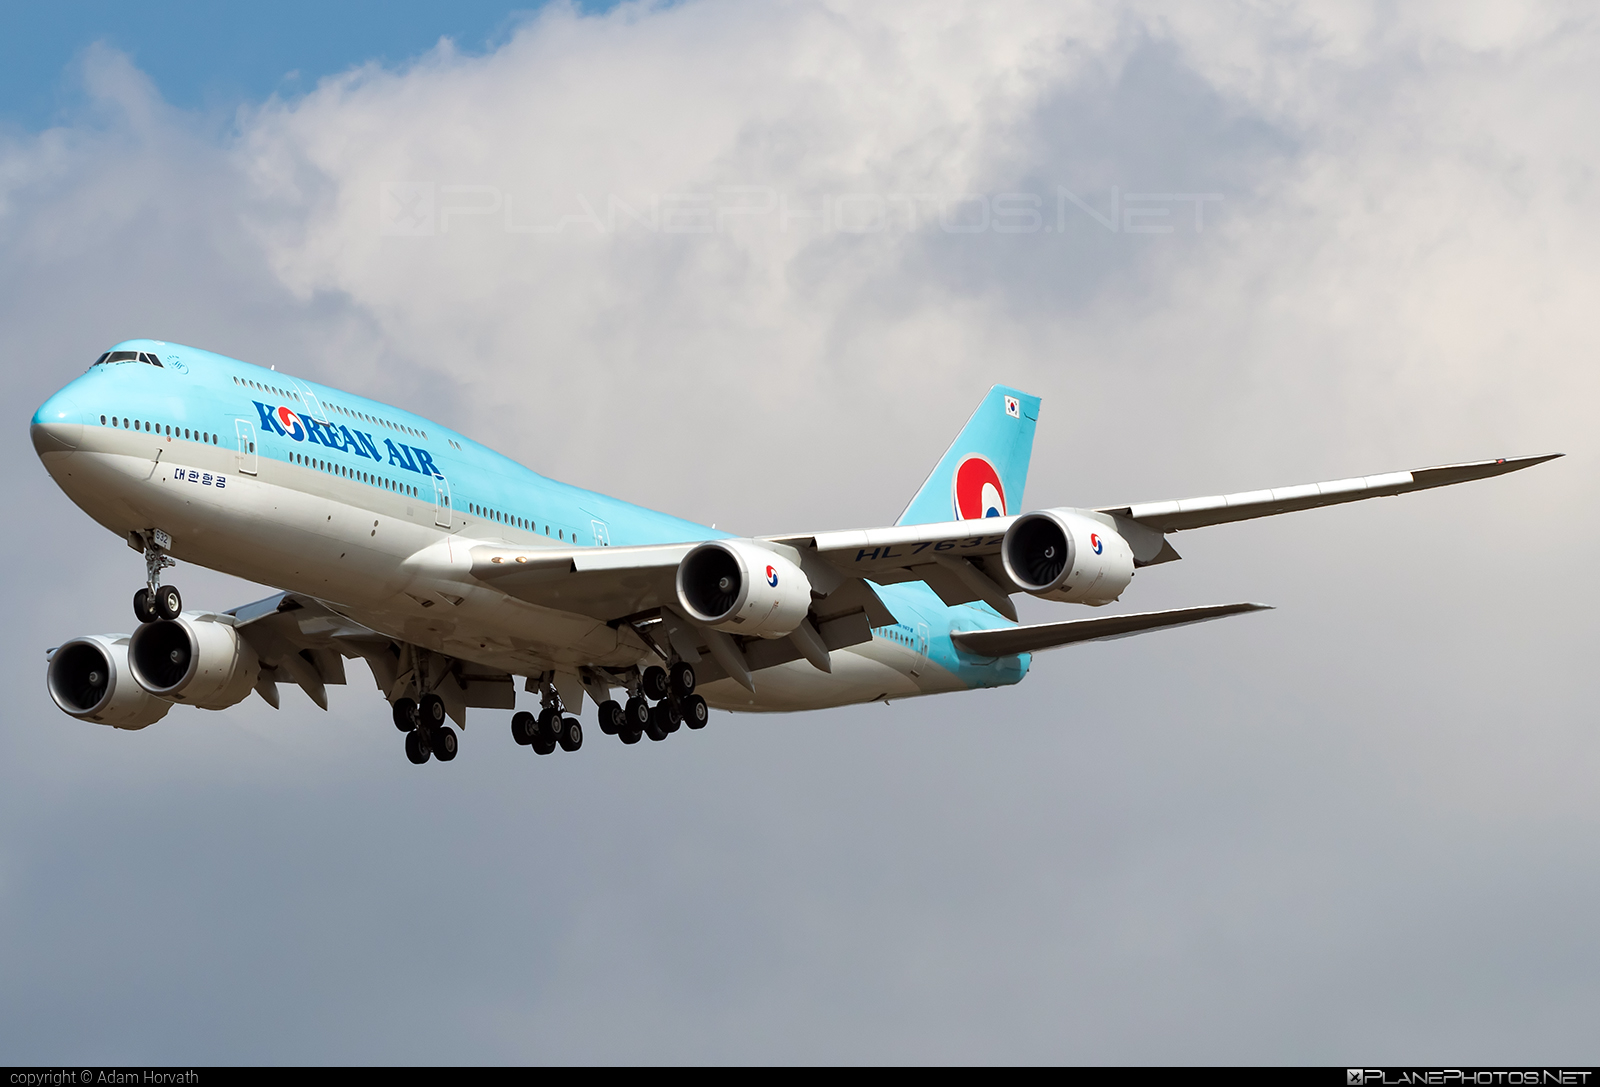 Boeing 747-8 - HL7632 operated by Korean Air #b747 #boeing #boeing747 #jumbo #koreanair